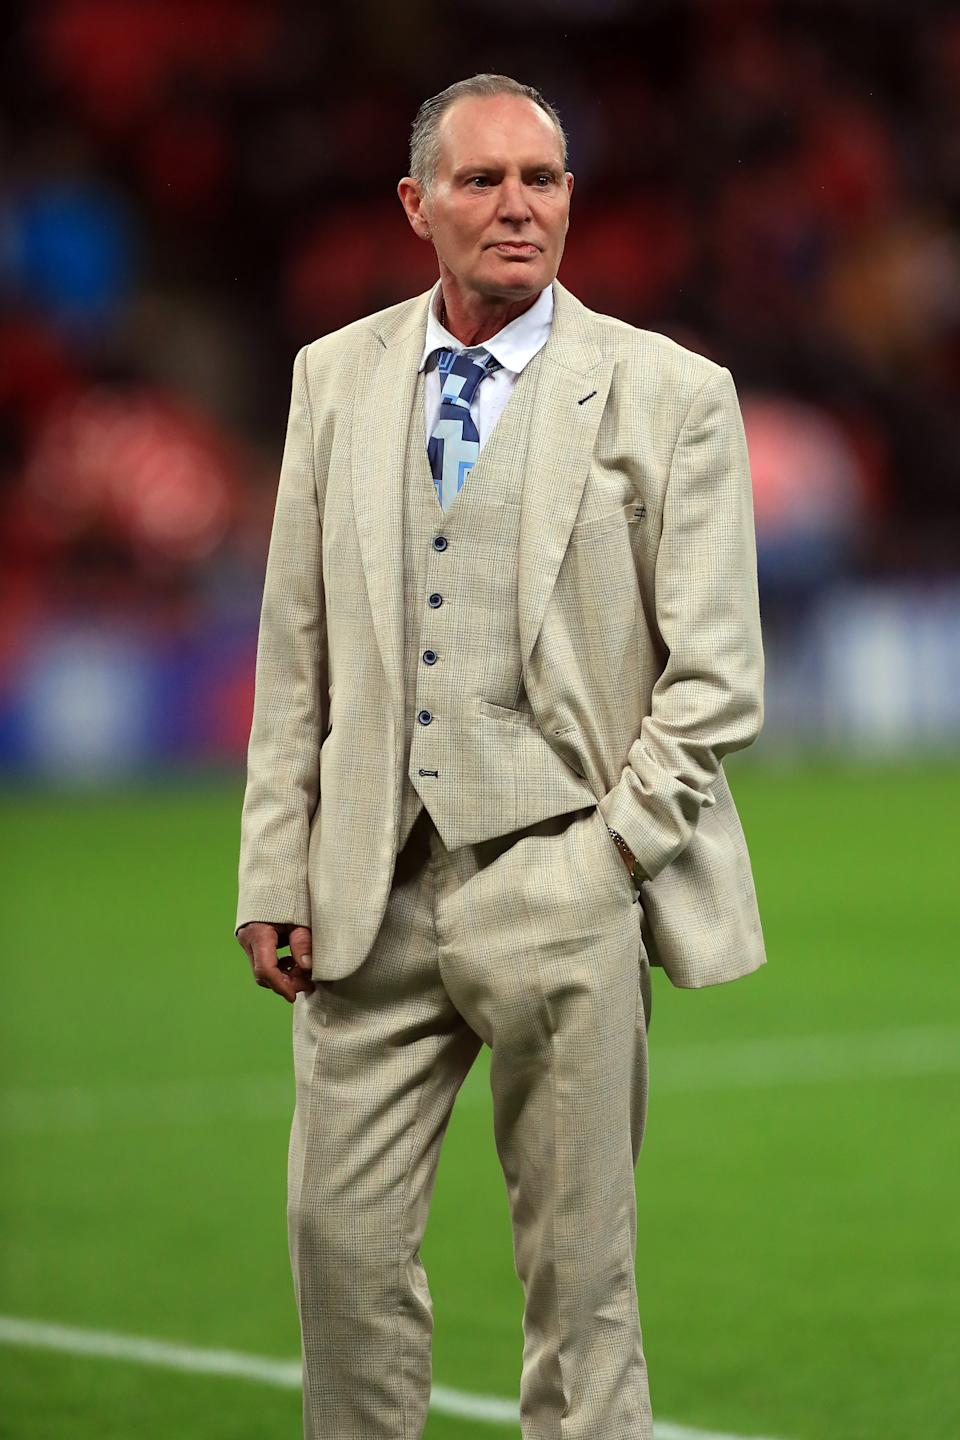 Former England player Paul Gascoigne attending the UEFA Euro 2020 Qualifying match at Wembley, London.